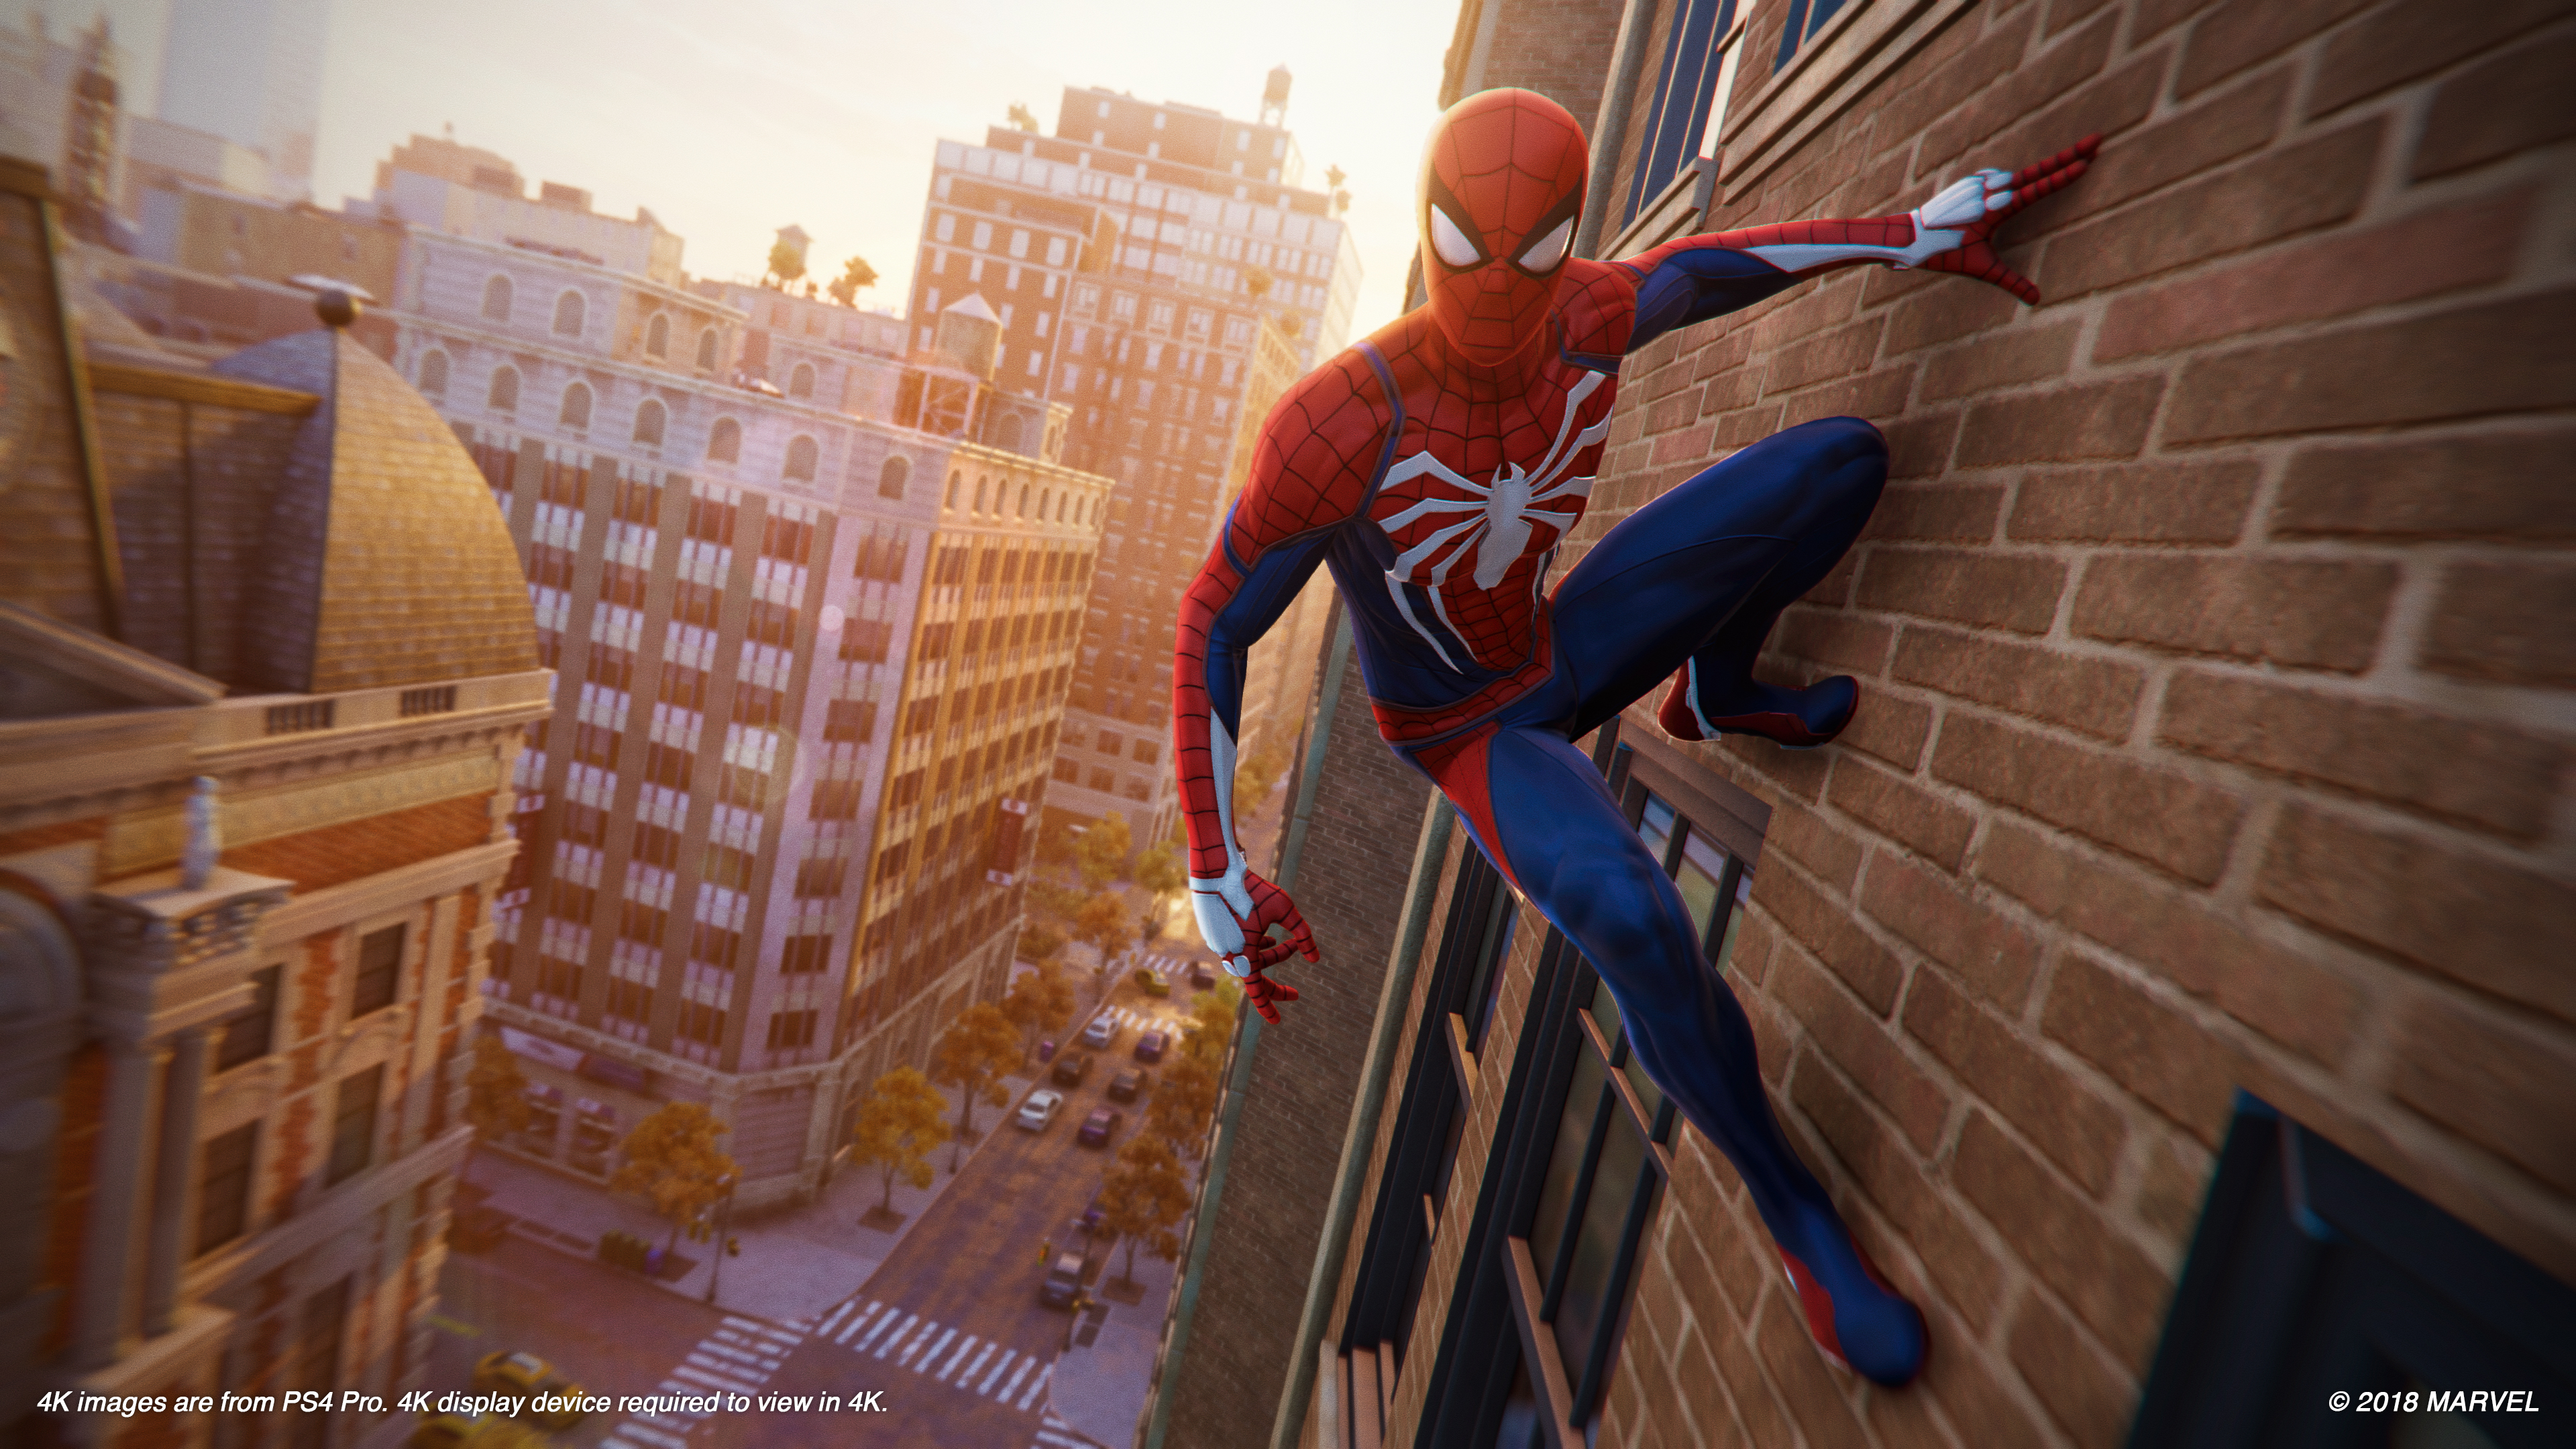 Marvel's Spider-Man Photo Mode lets you create your own comic covers